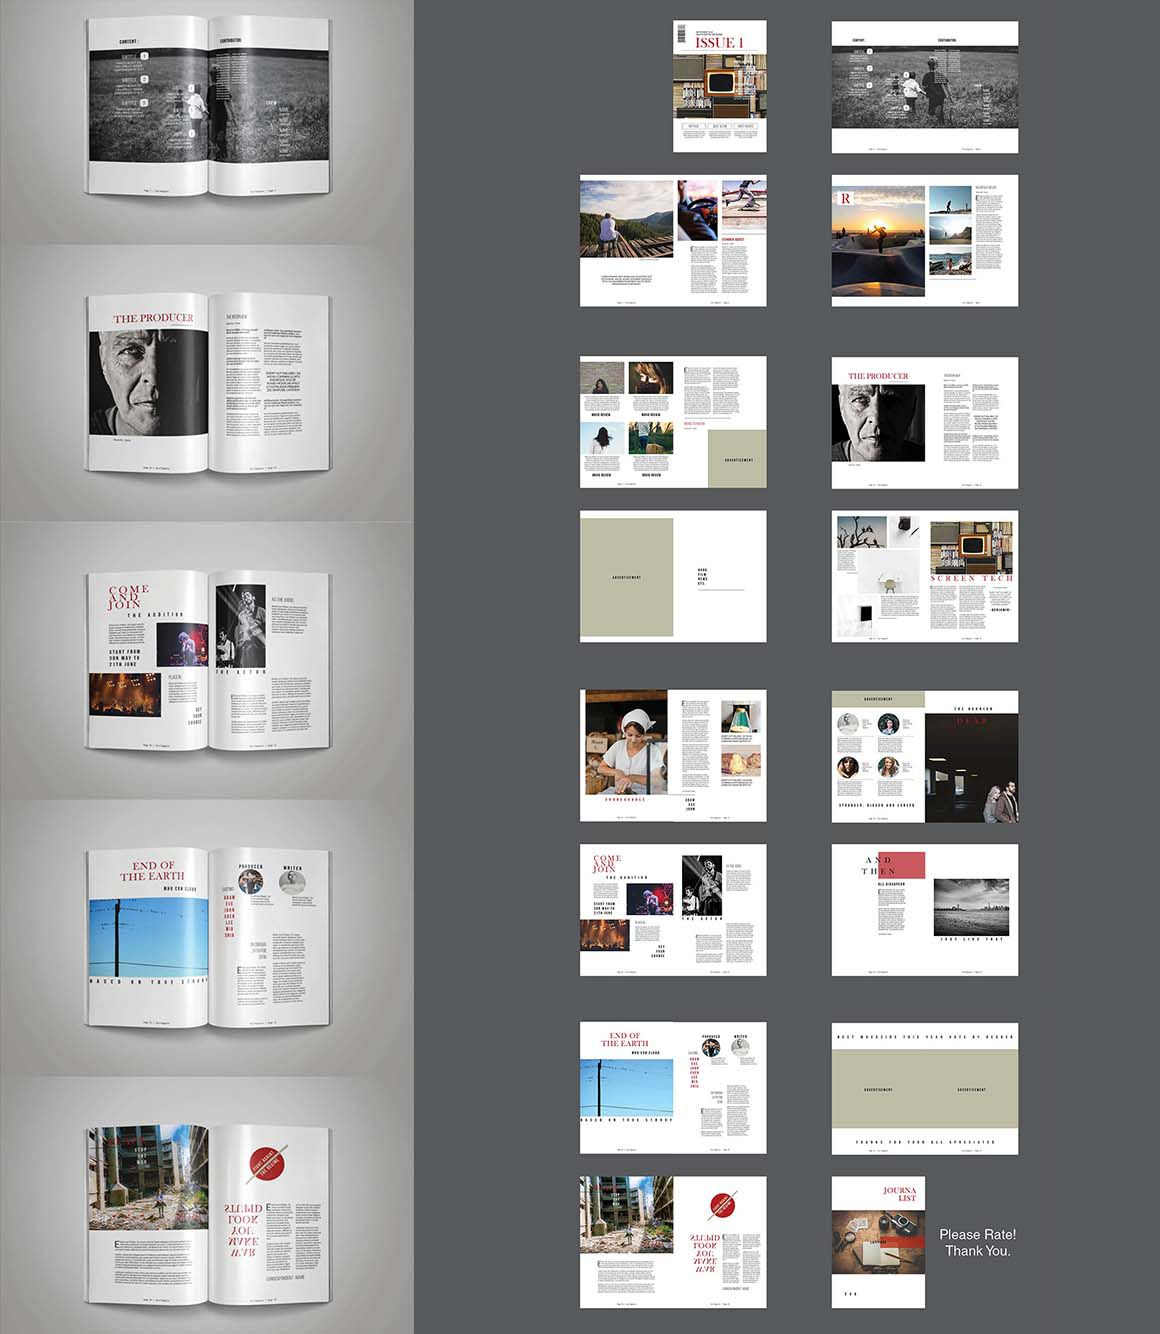 009 Stirring Free Magazine Layout Template Example  Templates For Word Microsoft PowerpointFull